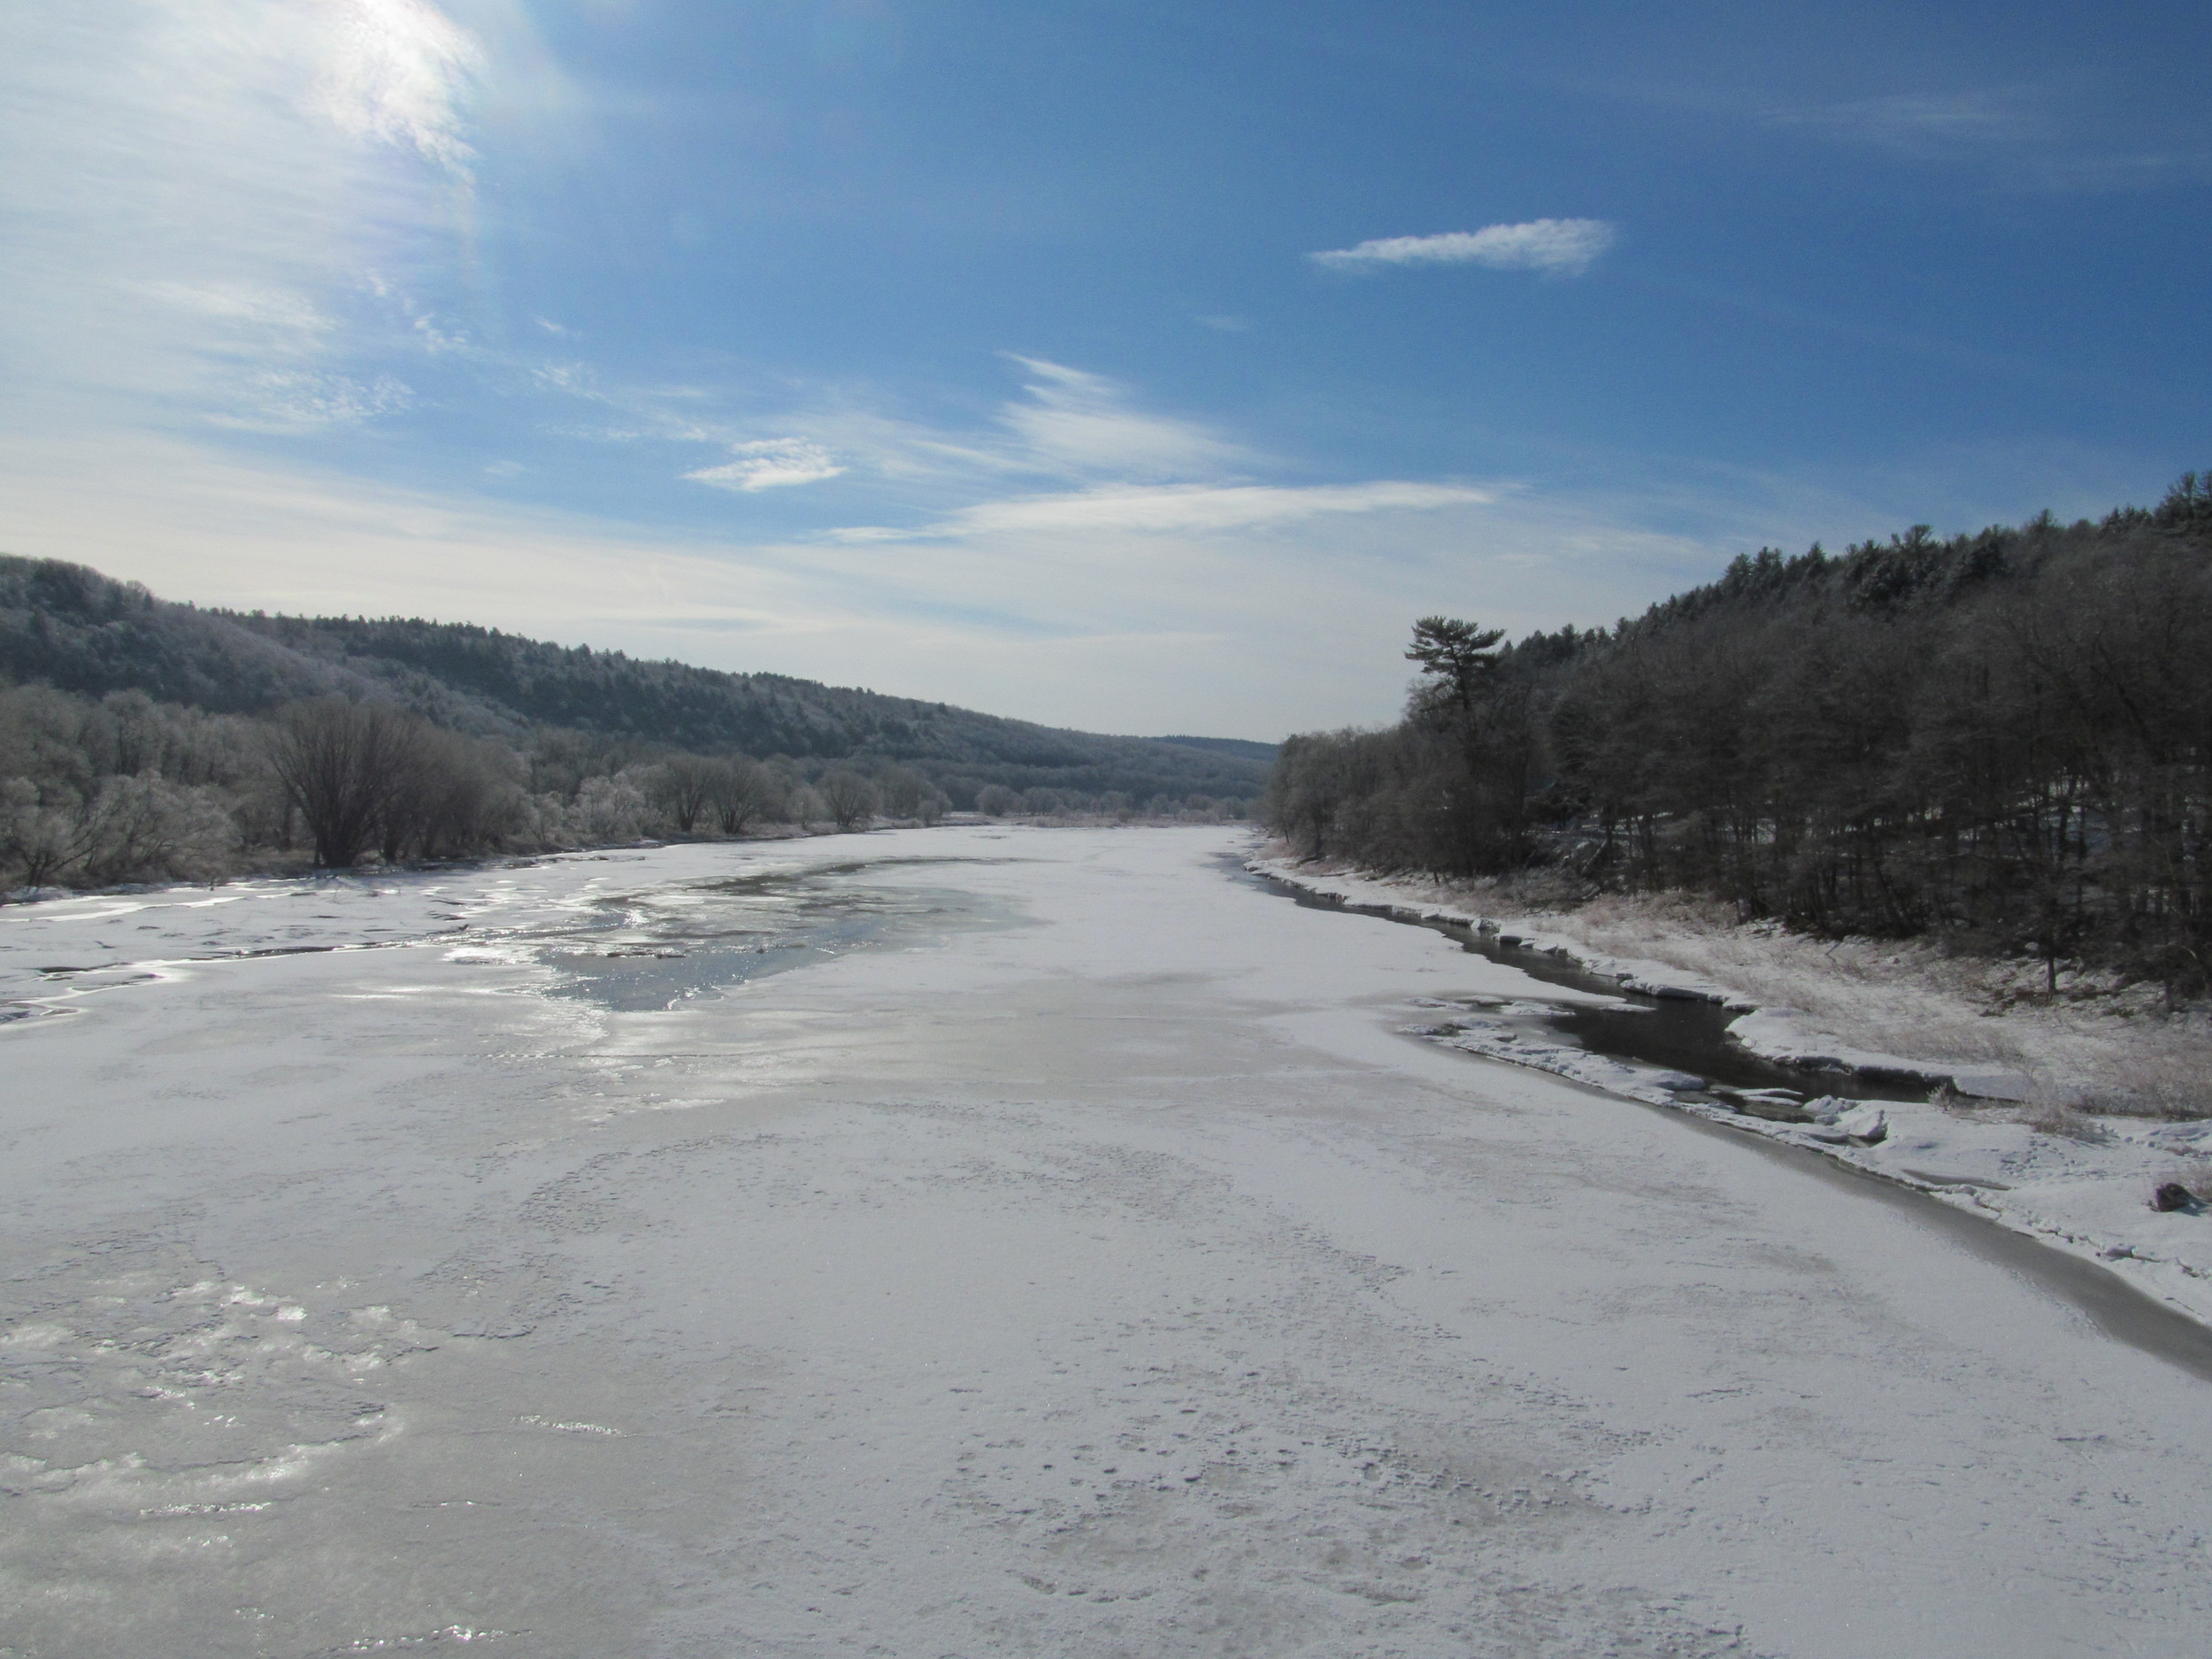 Delaware River at Damascus/CochectonBridge looking down river4/1/15